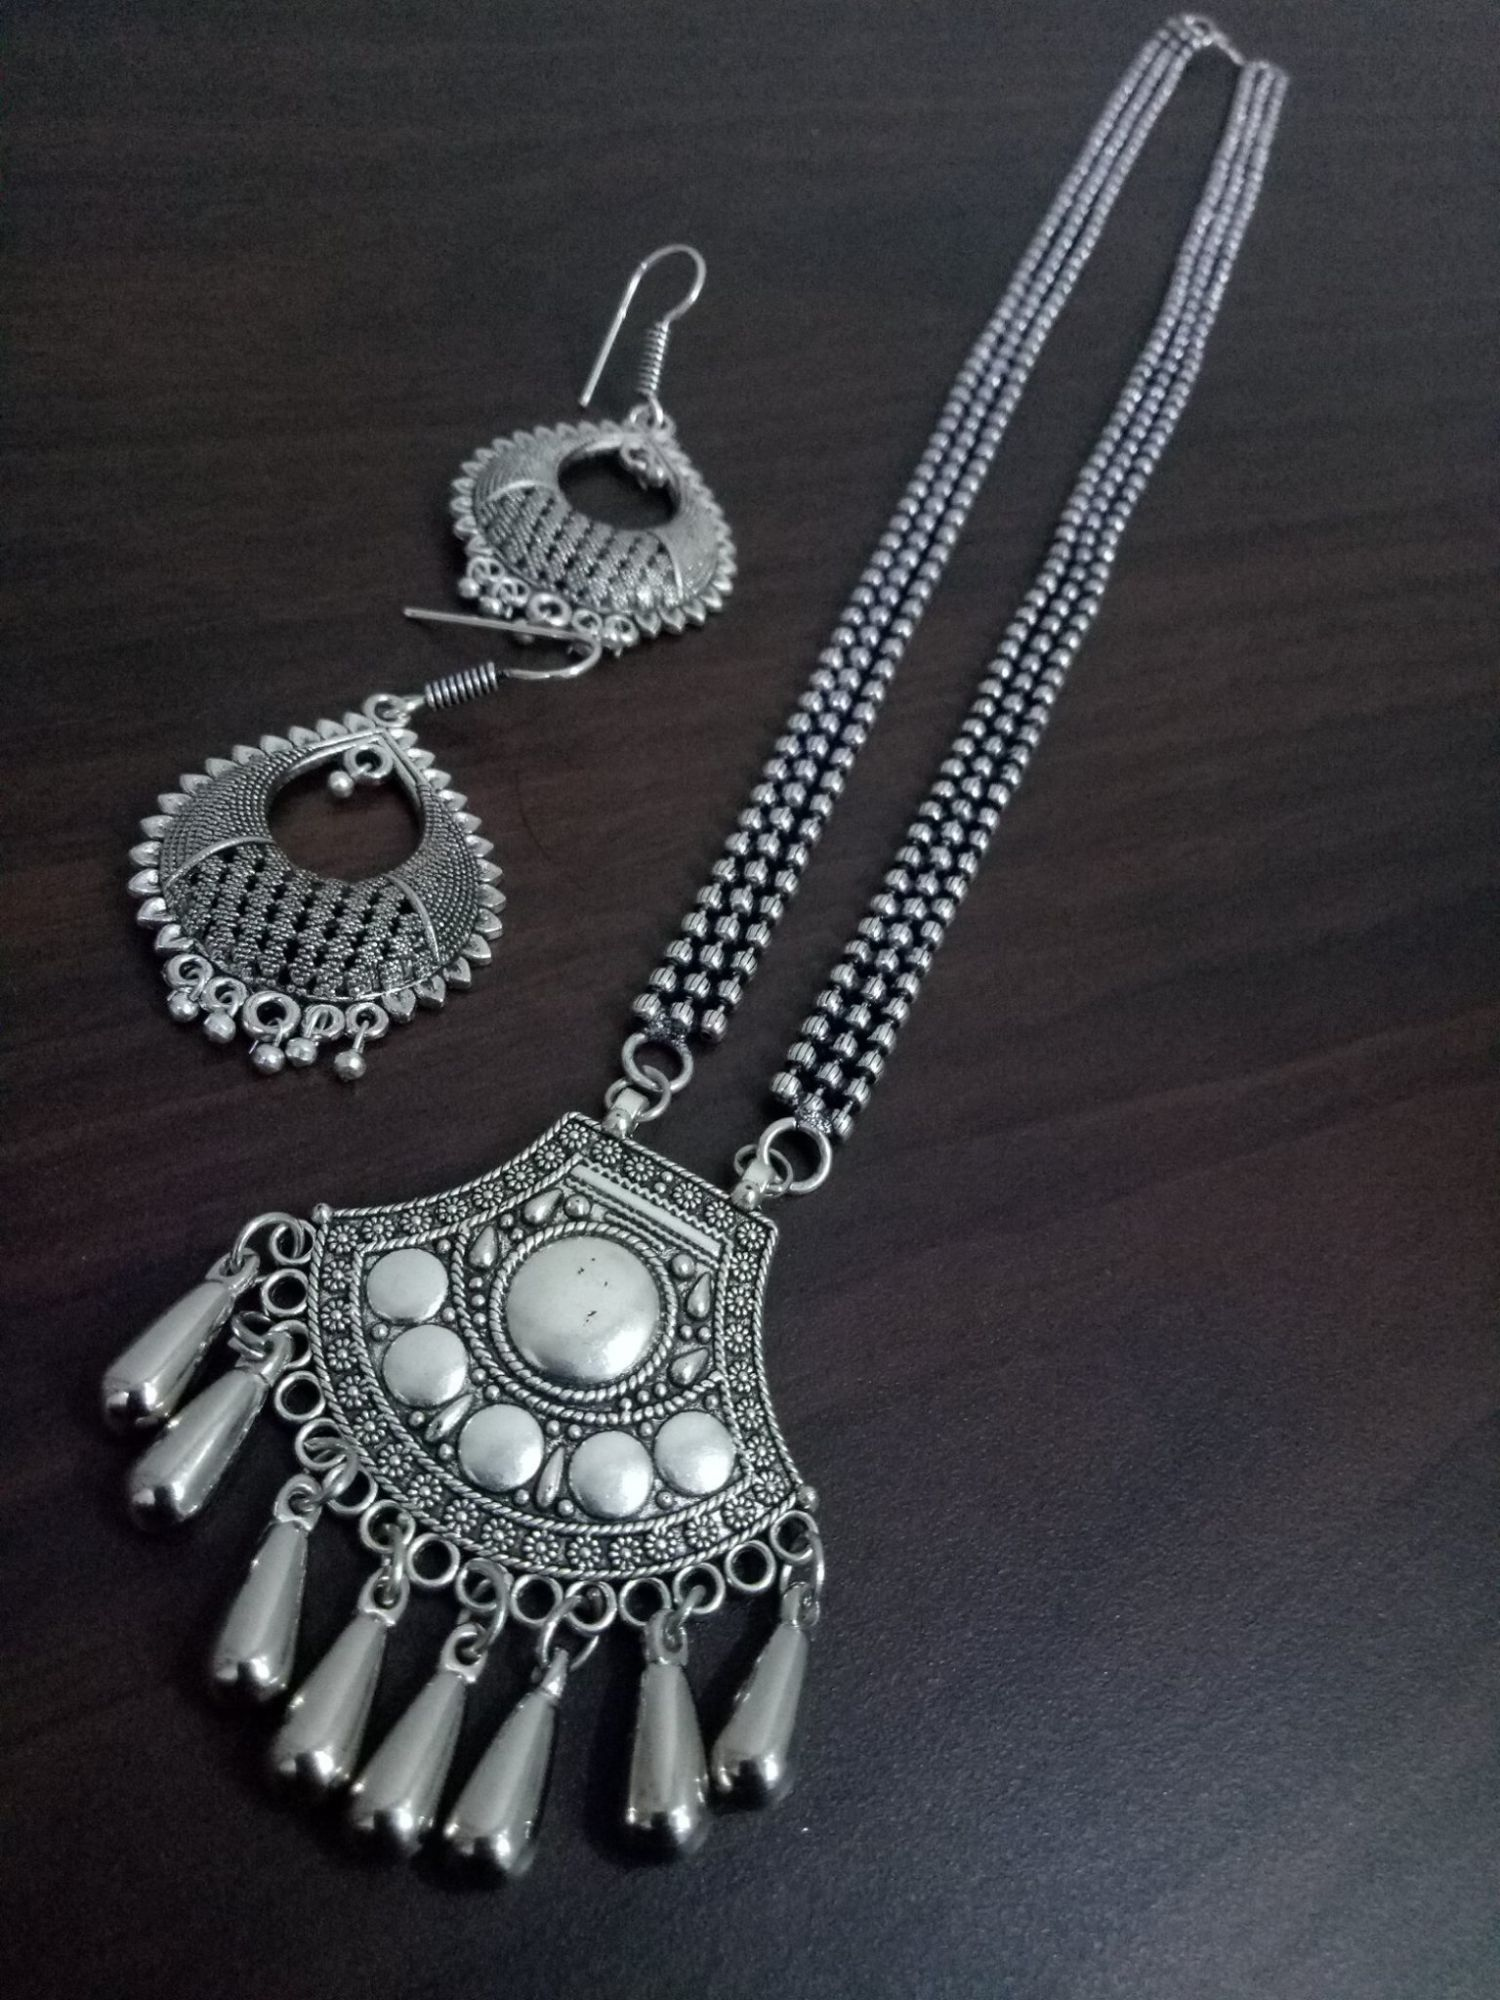 Appealing Oxidised Ball Chain Necklace Set